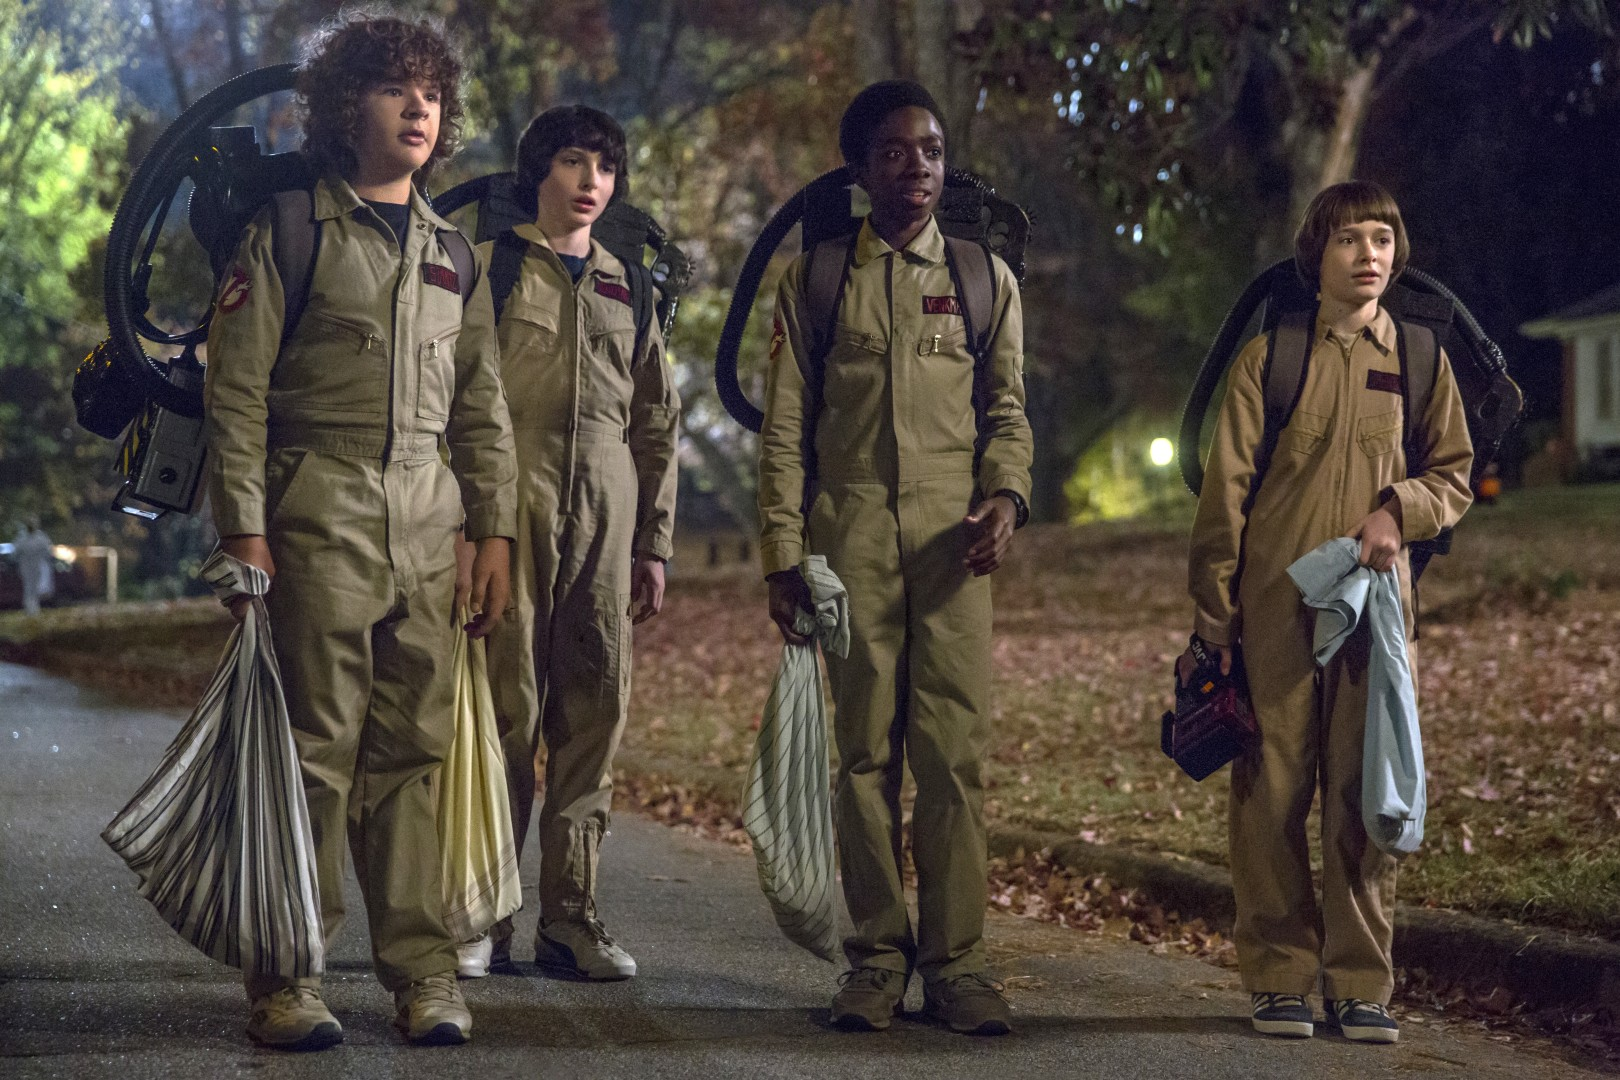 Netflix signs up more subscribers than expected on 'Stranger Things